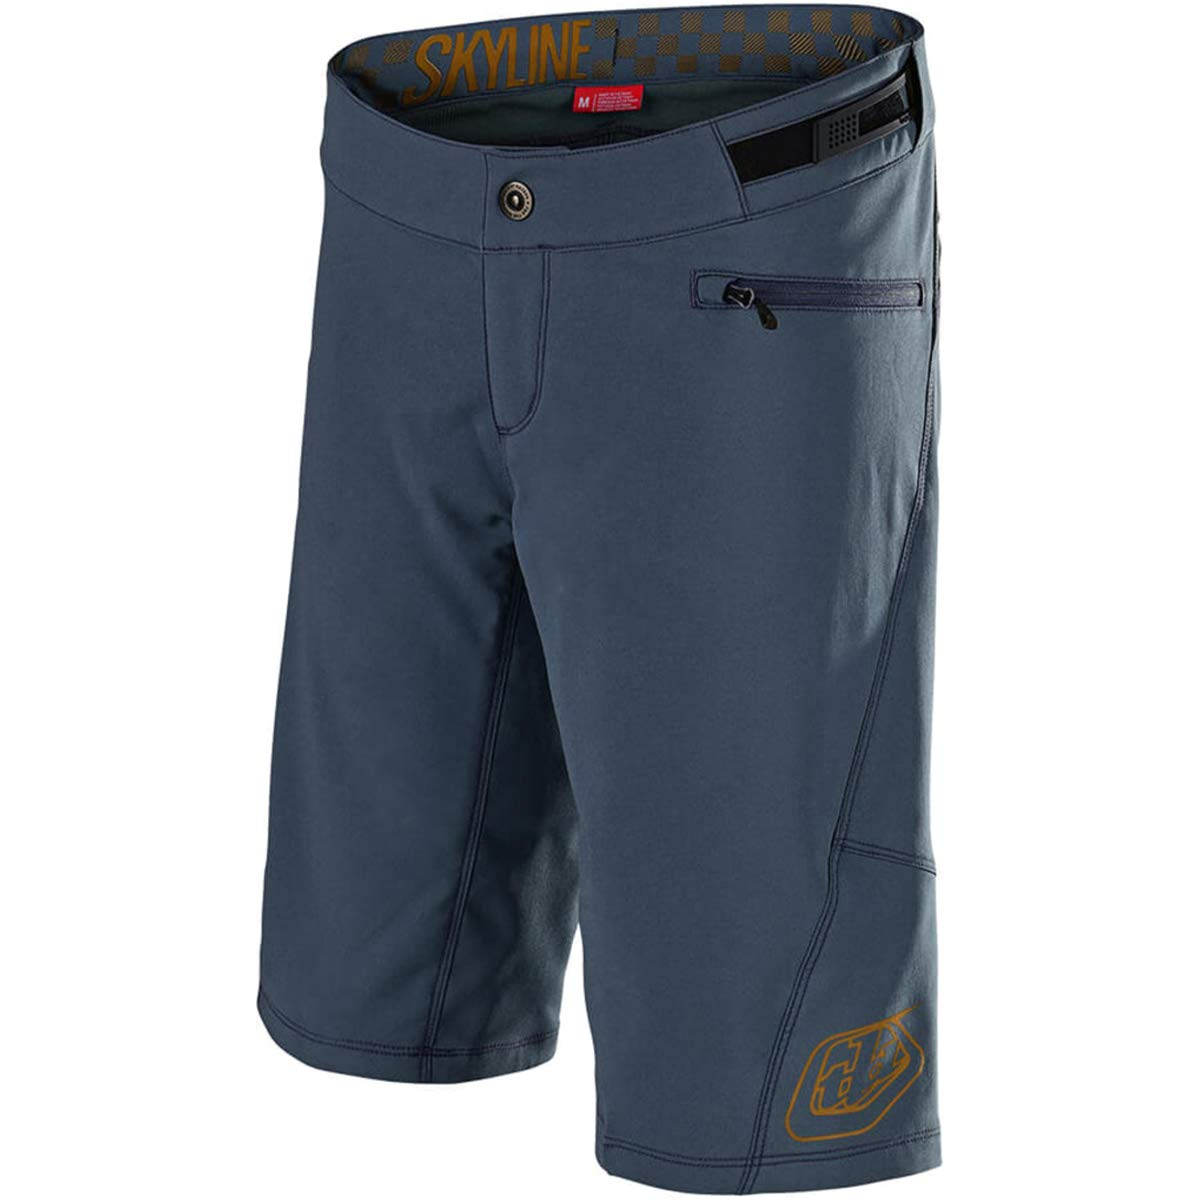 Troy Lee Designs Skyline Short with Liner - Women's Solid Slate/Bourbon, S by Troy Lee Designs (Image #1)